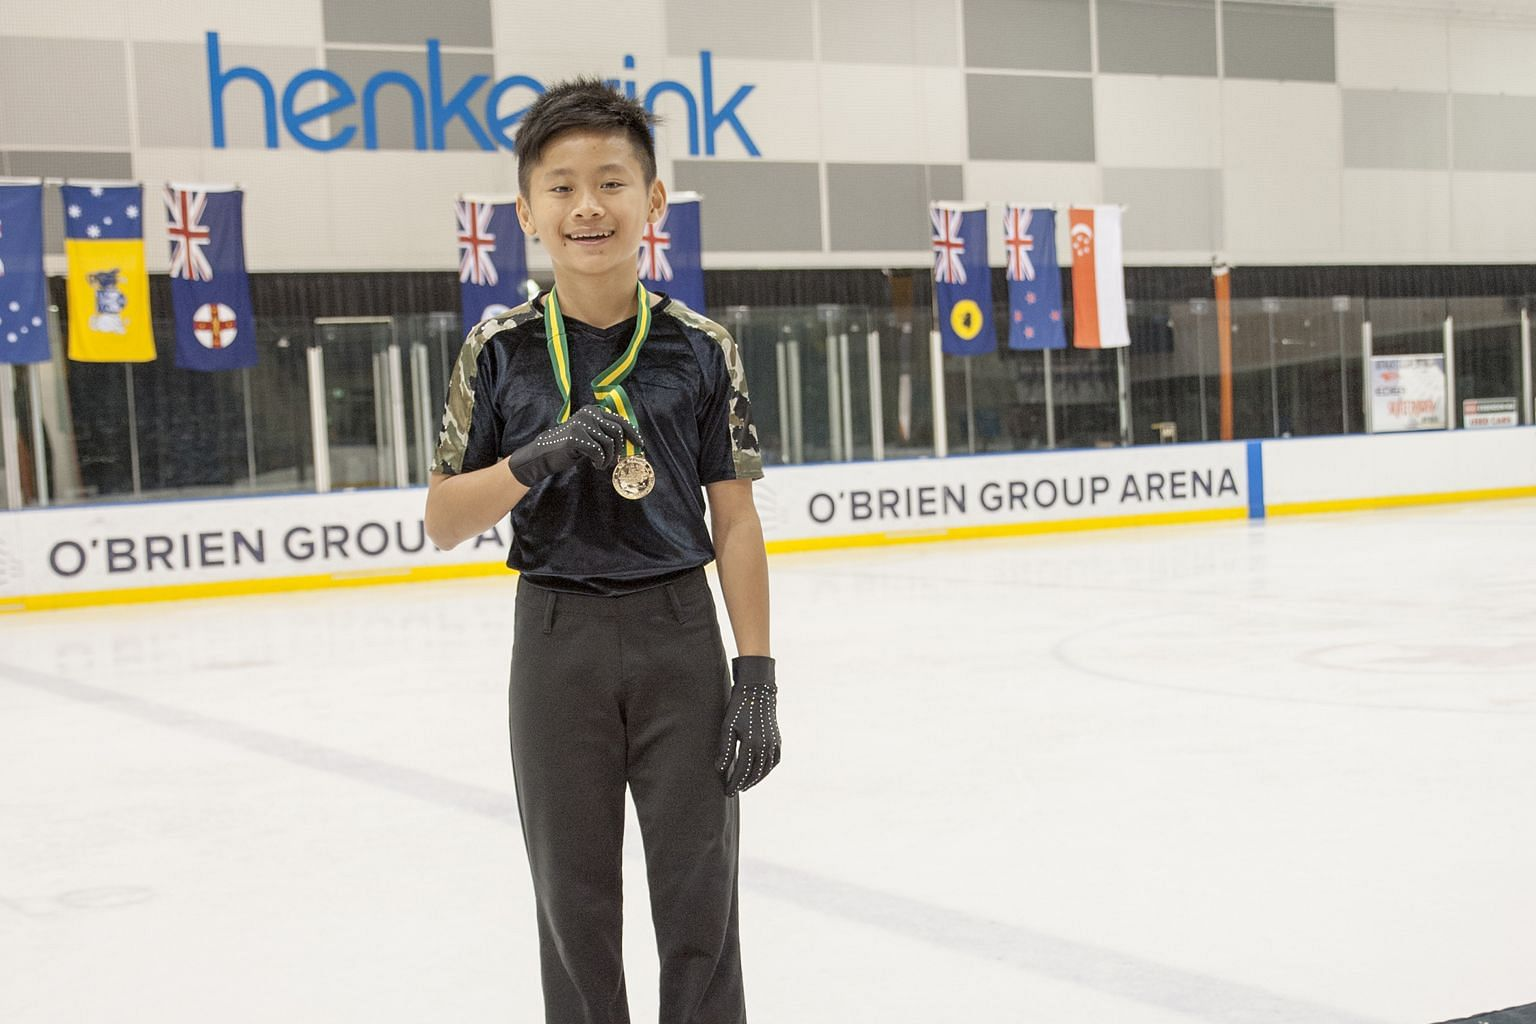 Singapore skater Pagiel Sng won the men's basic novice A division at the Australian Figure Skating Championships in Melbourne yesterday. The 12-year-old was taking part in his first competition of the season, making his return after injury a triumpha